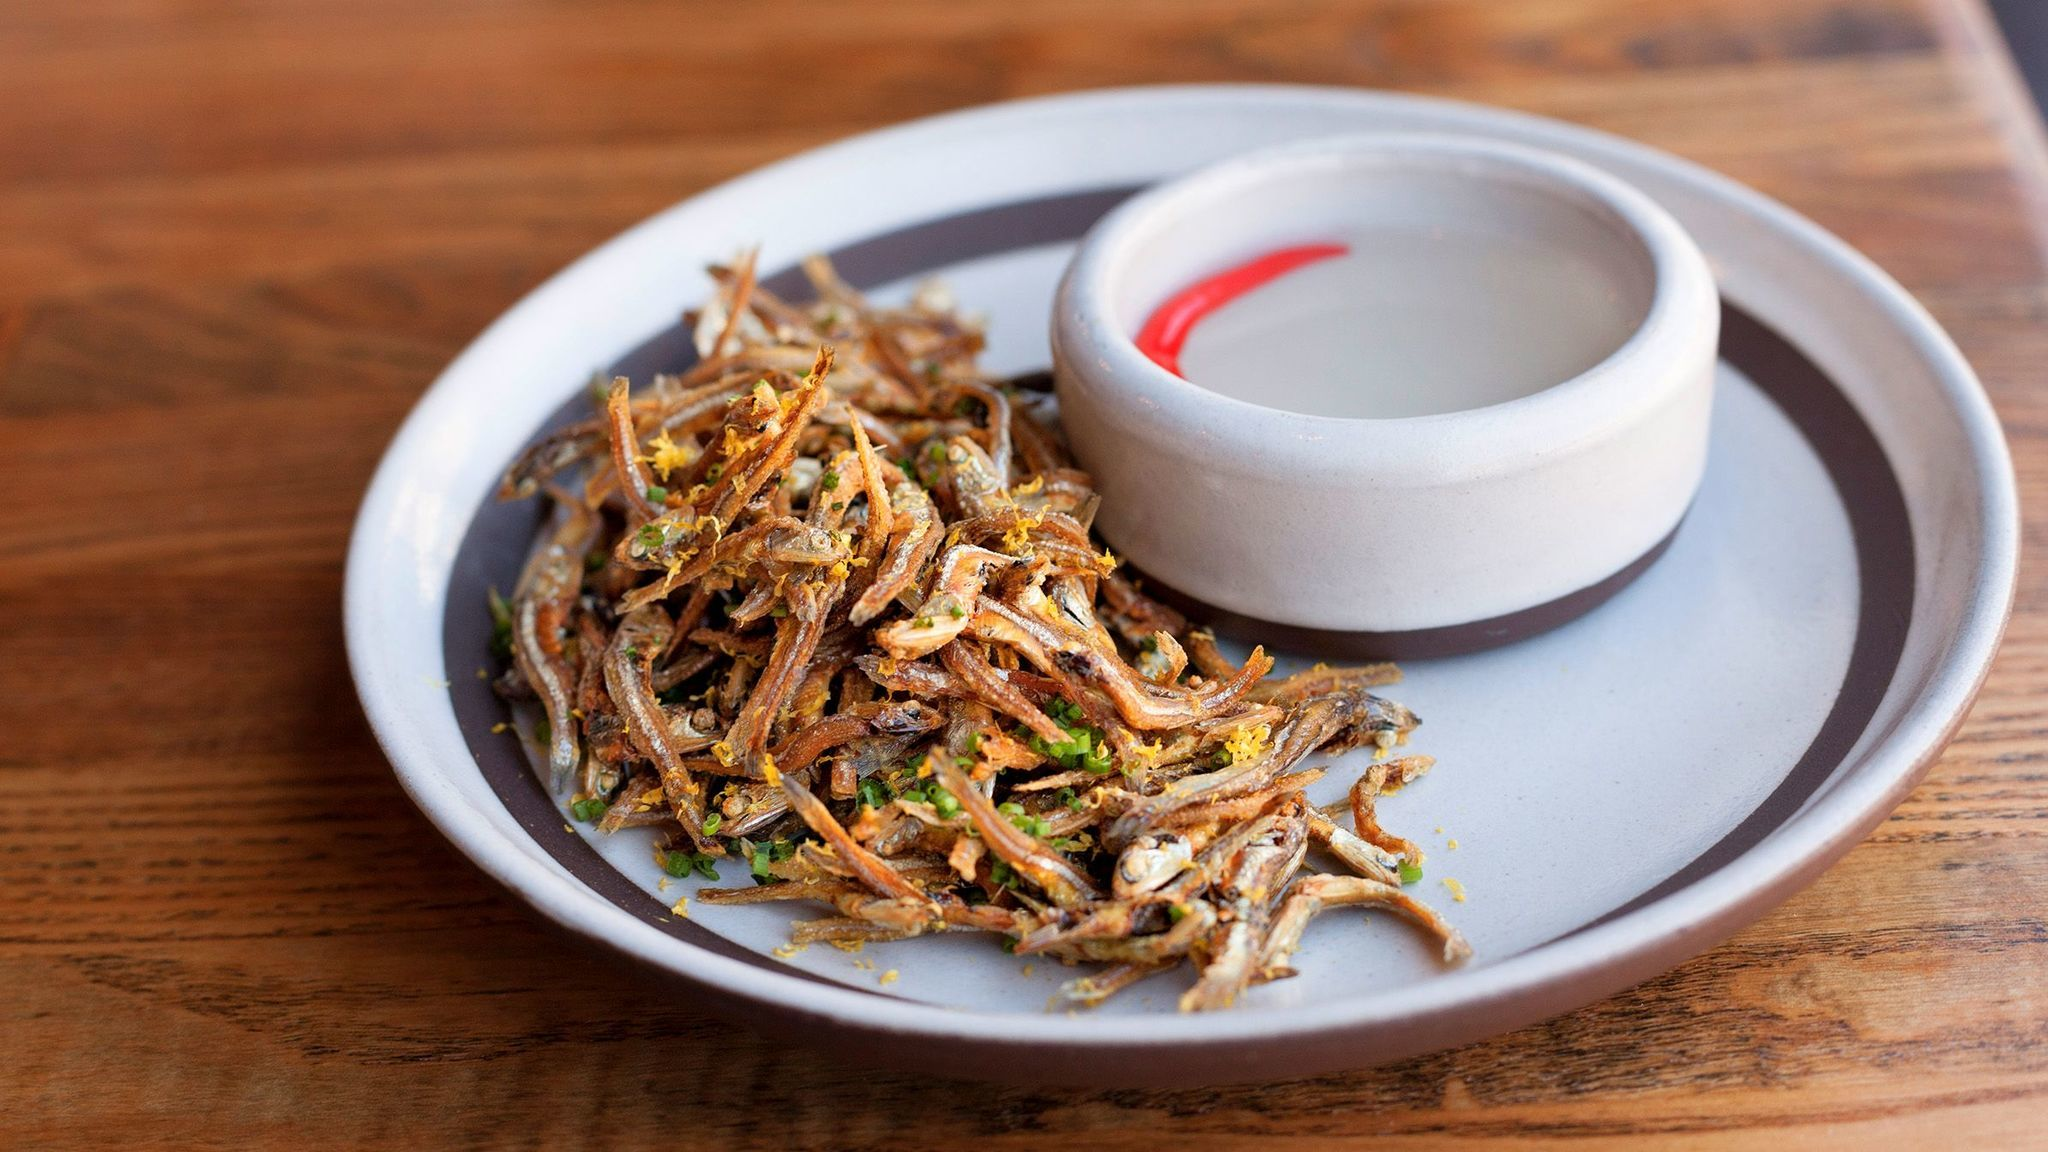 Dried and fried anchovies are a beloved Filipino snack, served exquisitely at Irenia with a pungent infused vinegar for dipping.